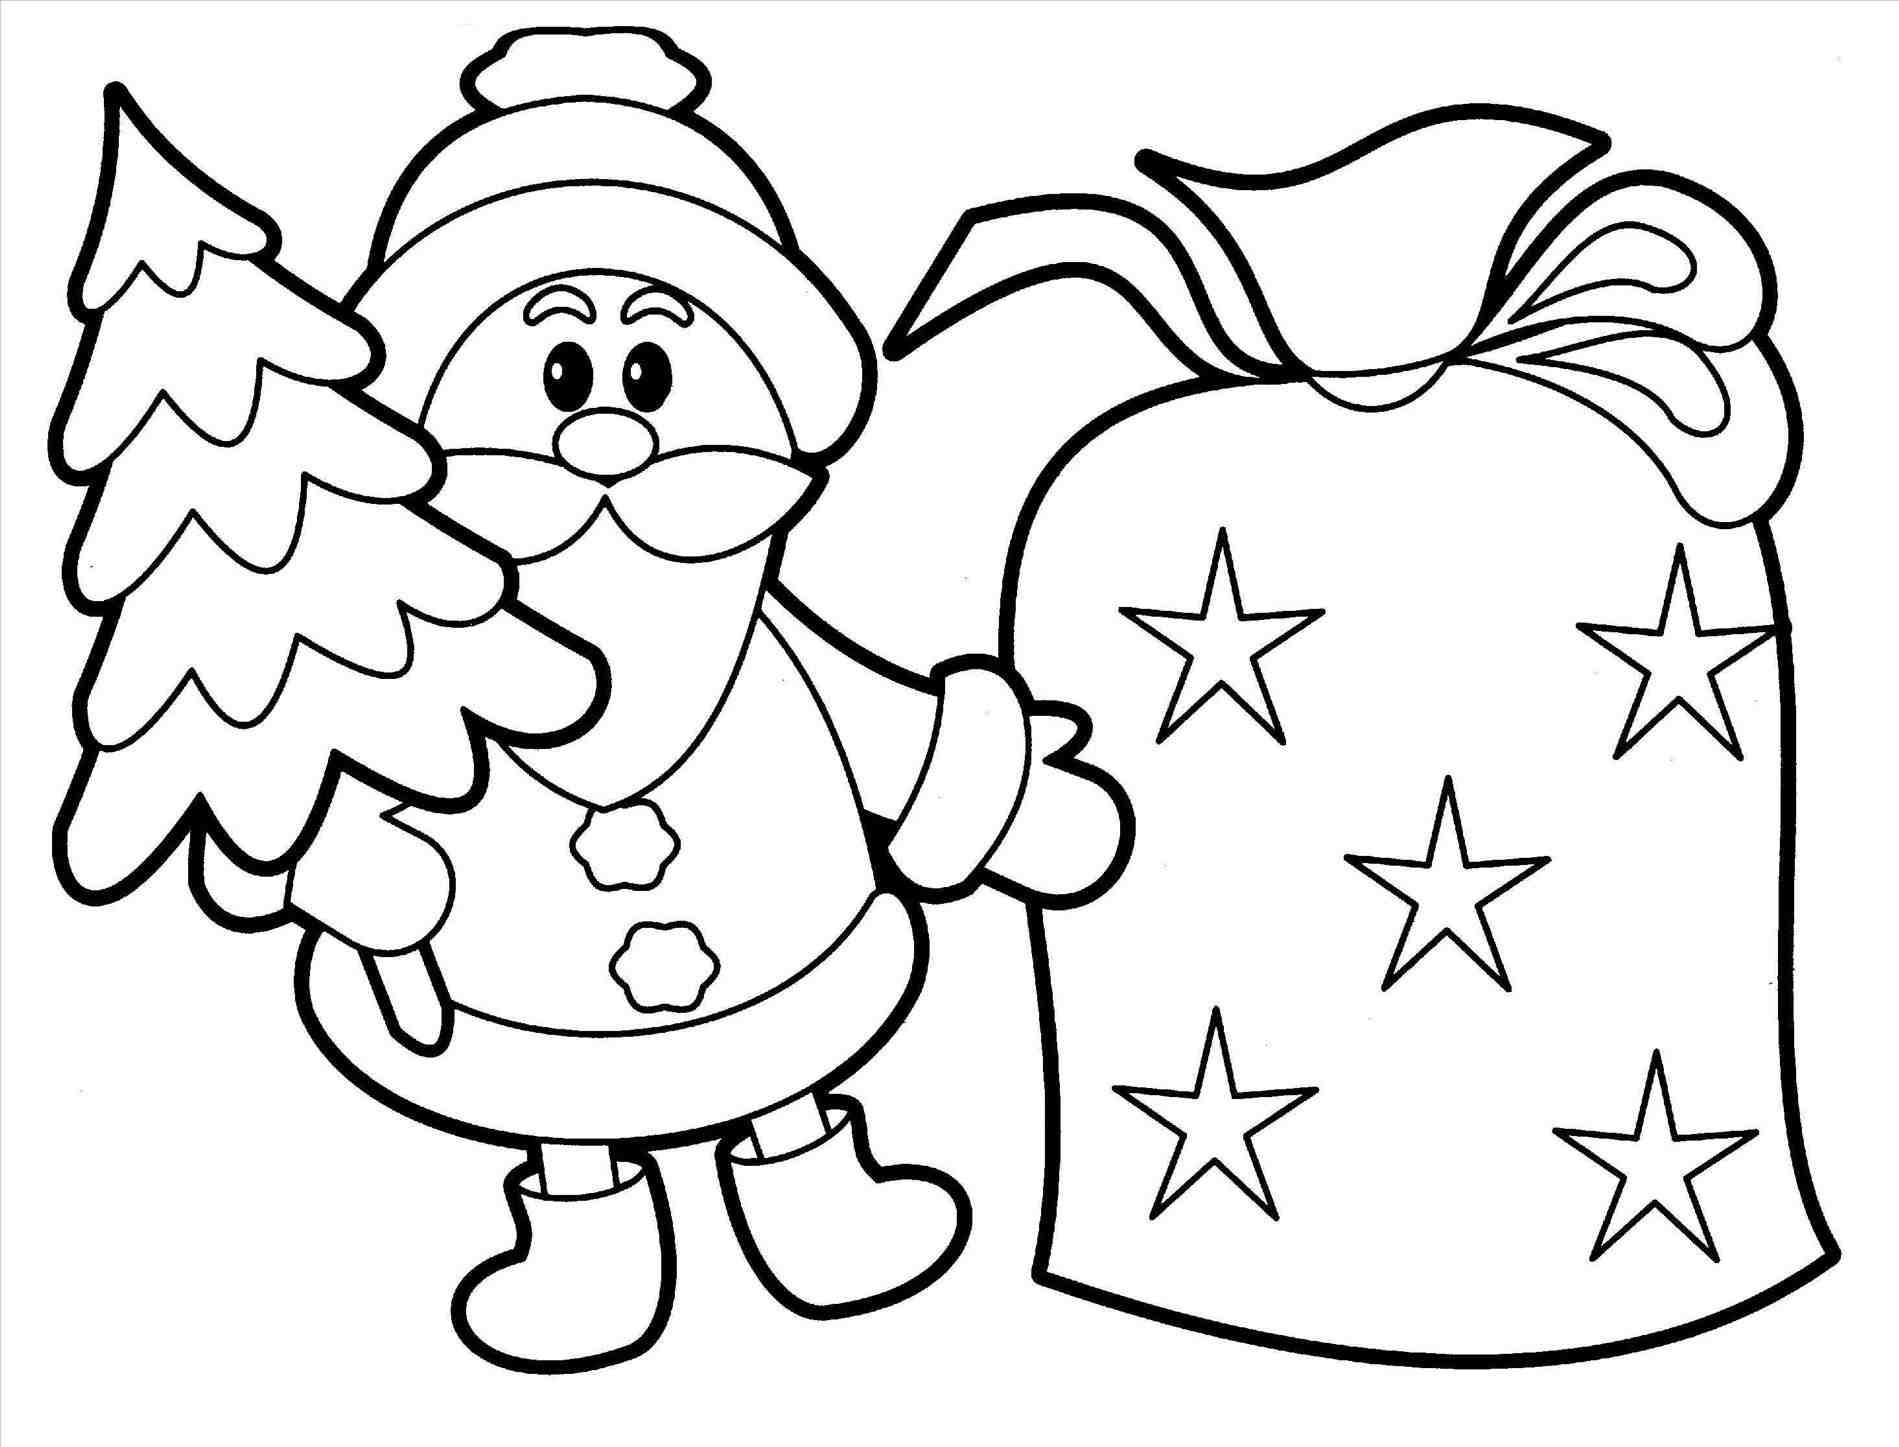 1899x1447 Santa Claus Drawing Luxury Easy Christmas Drawing for Kids to Draw